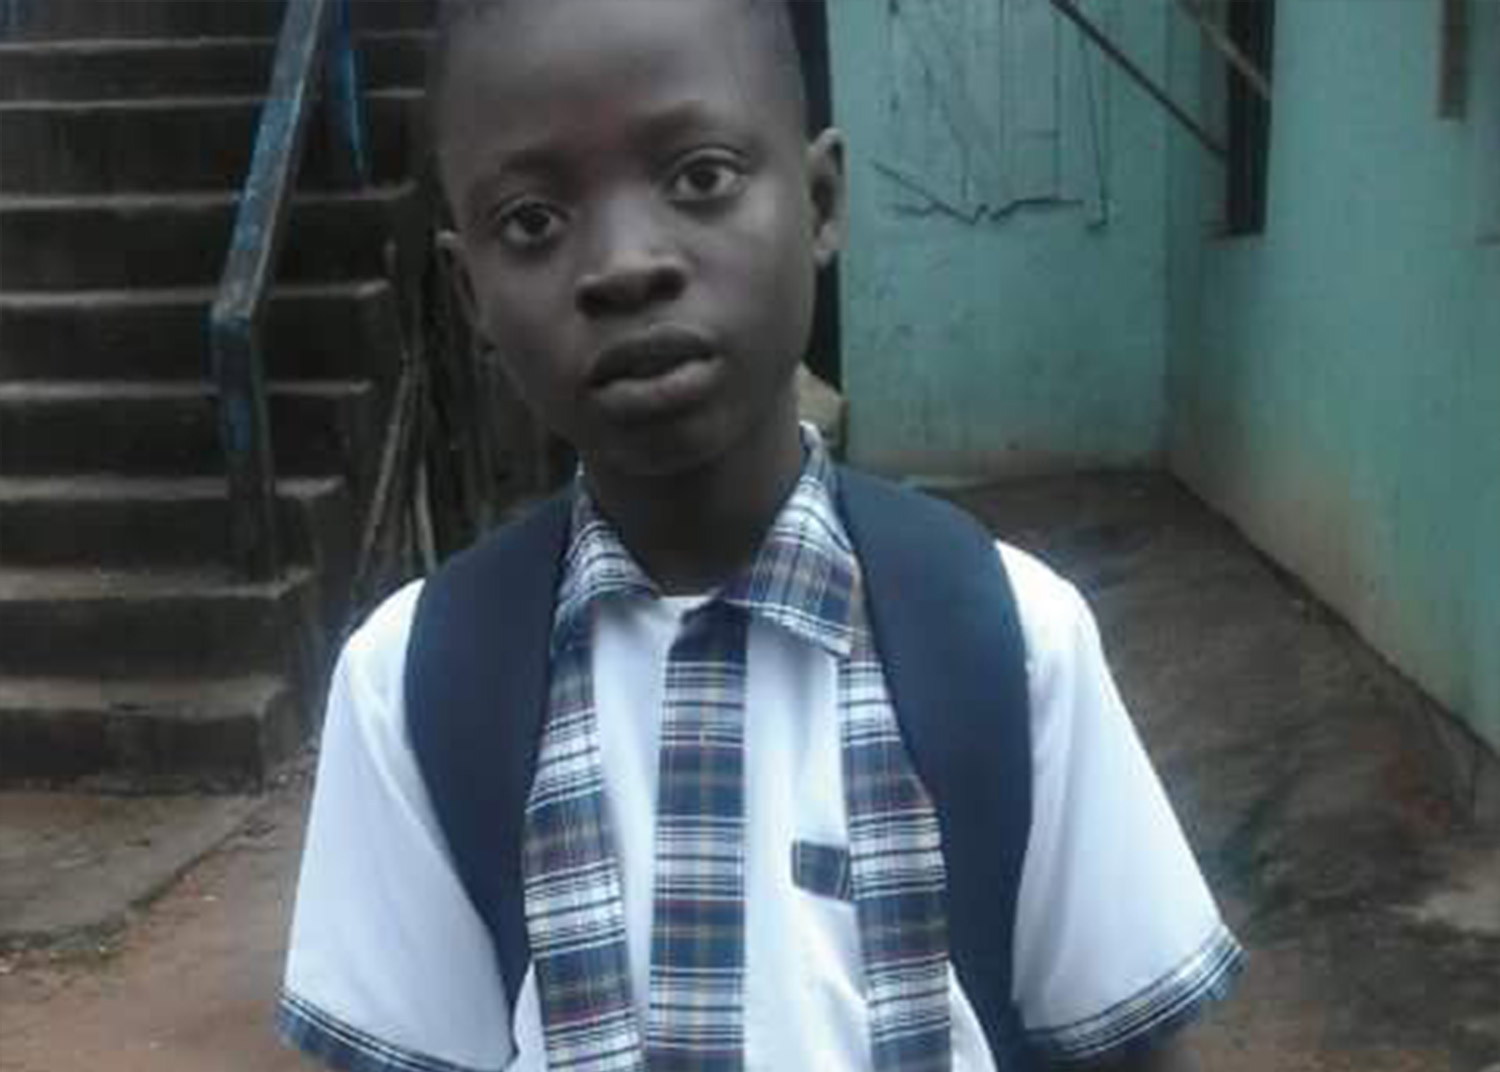 Eddie Boy - Arinze has been sending his own money to his friend Eddie Boy for the past 4 years. Eddie boy is 14 but only in the fourth grade because of his lack of prior education. Arinze is making a difference in his friend's life.